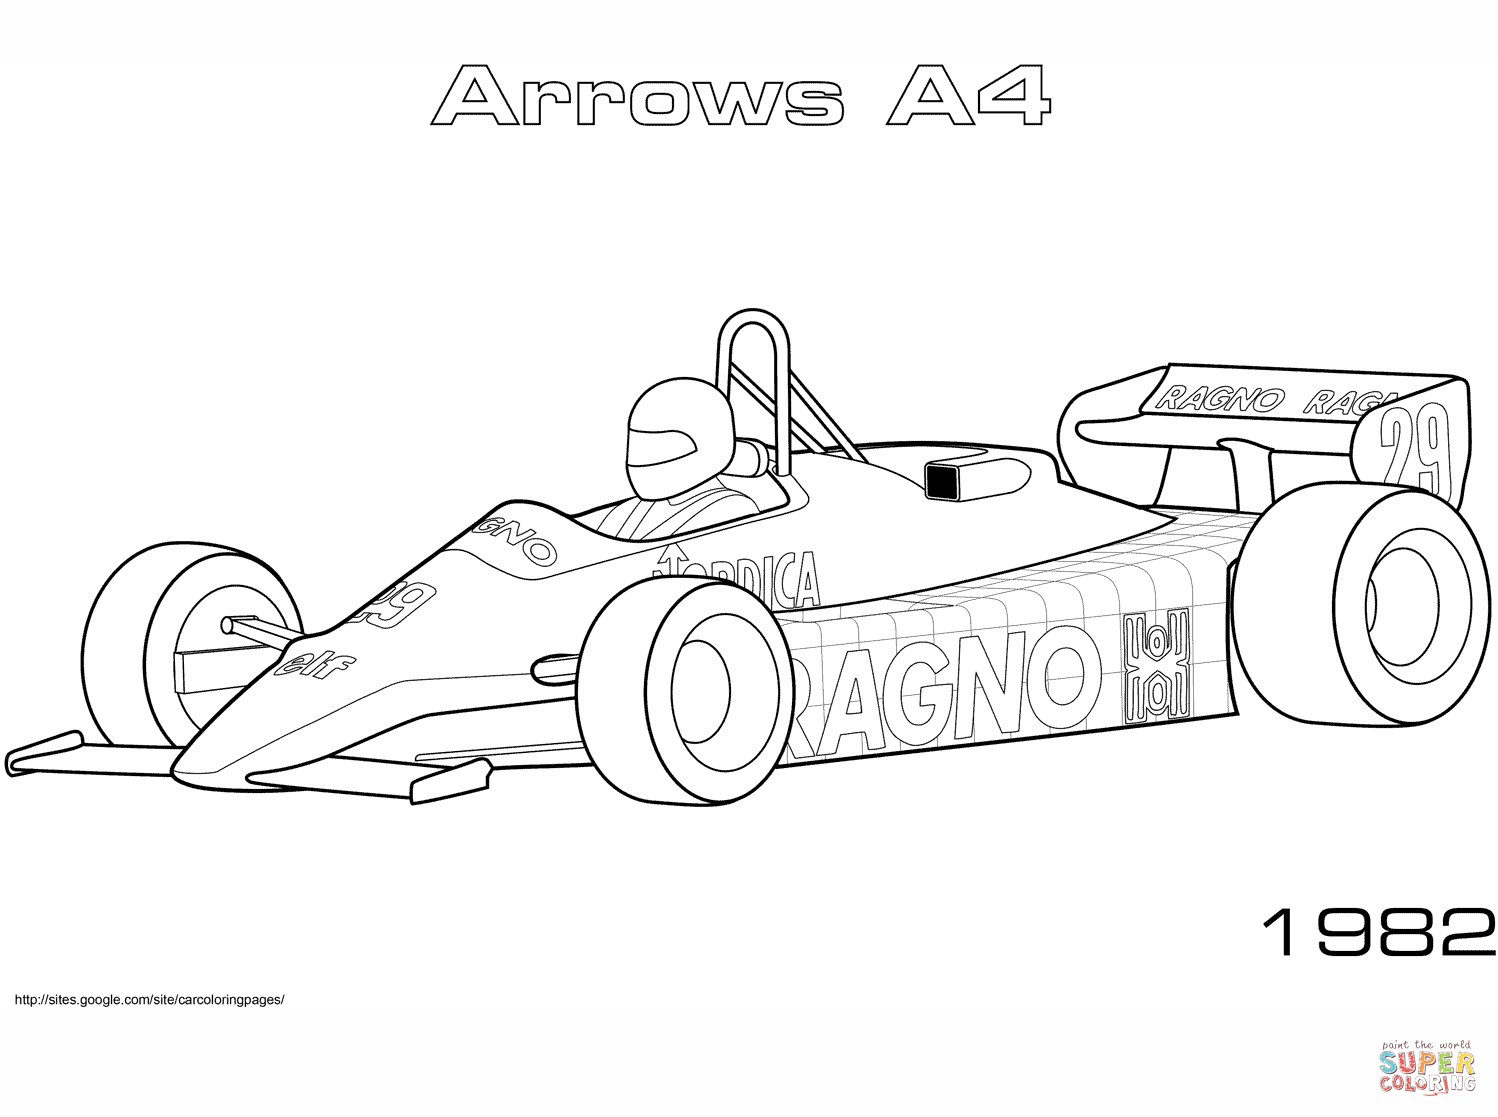 Arrows A4 Coloring Page